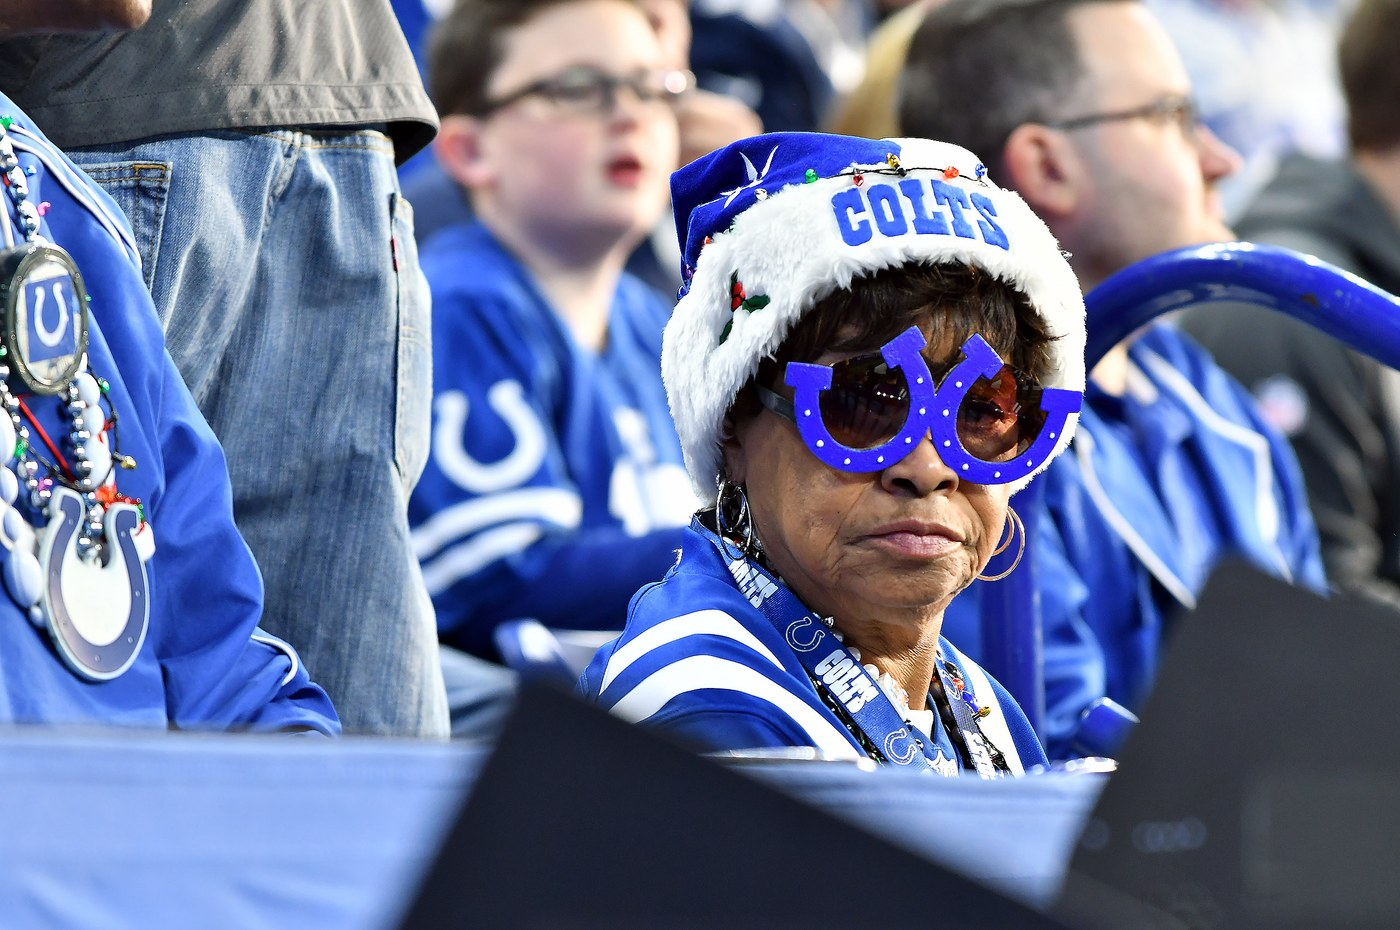 Indianapolis colts Dallas cowboys_2018 0255.jpg